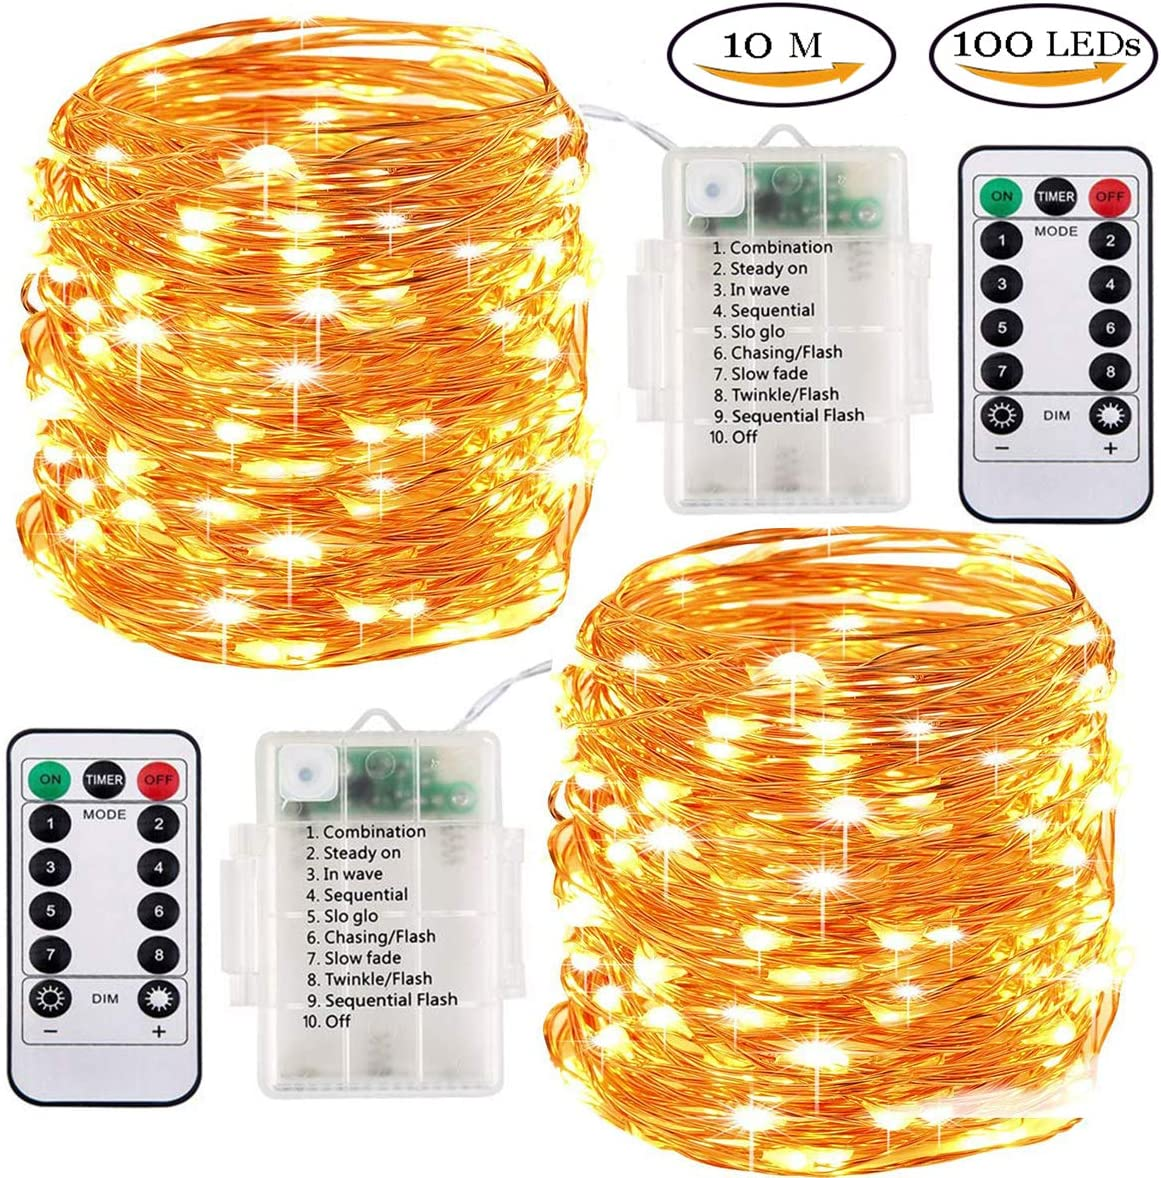 2 Pack Led Fairy Lights Battery Operated String Lights 33ft 100 Leds Waterproof Outdoor Indoor Decorative Rope Strip Lights For Home Garden Bedroom Centerpiece Christmas Wedding Party Warm White Amazon Co Uk Lighting